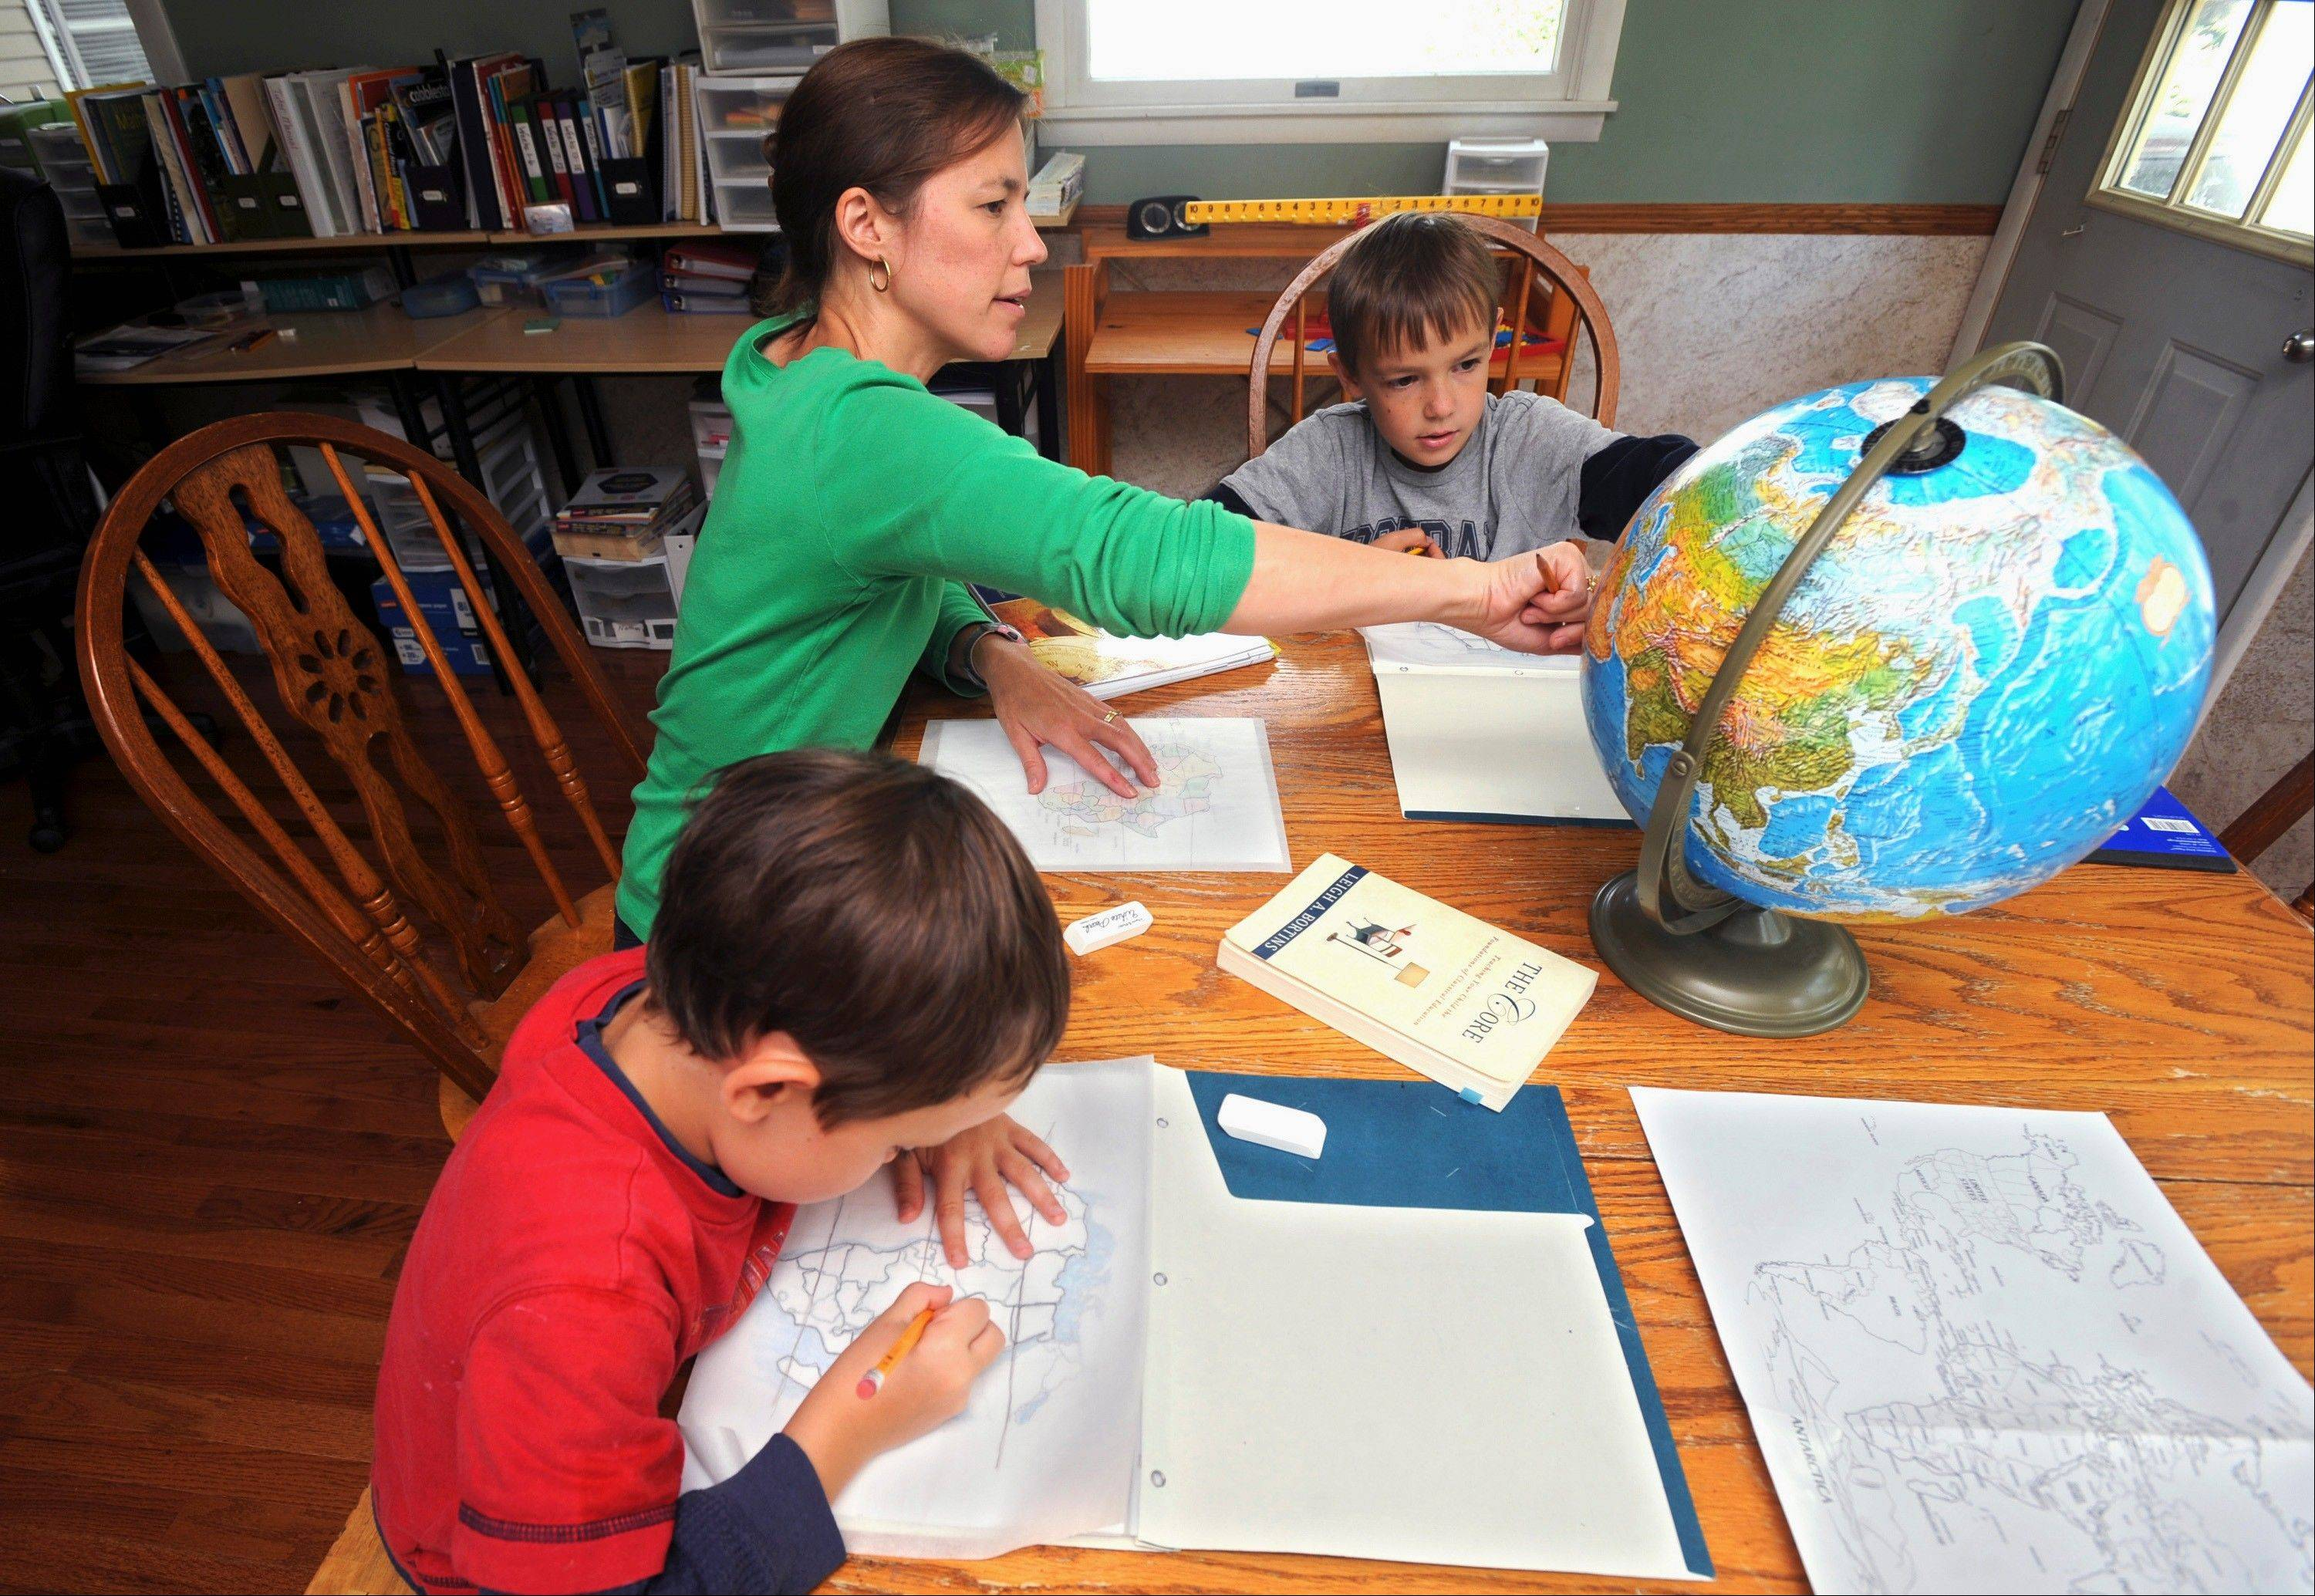 Elizabeth Boggs works with her sons Nathan, right, and Luke, left, with mapping and geography at her home in Charleston, Ill. Boggs is a member of the East Central Illinois Home Educators Network, a home-school support group with more than 40 member families.